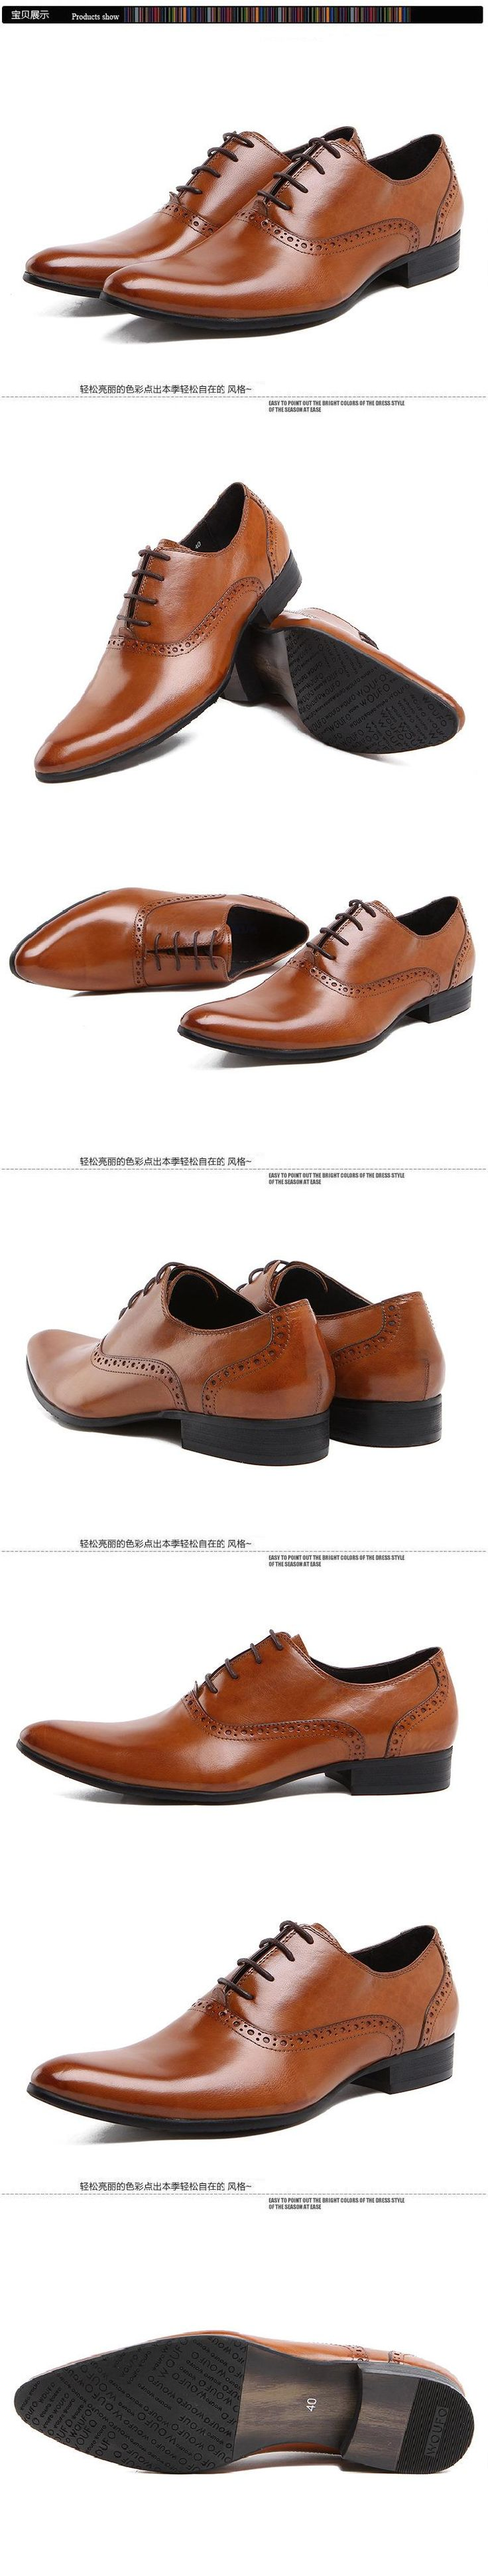 2015 New spring and autumn fashion England Men's Pointed toe Business dress Suits full grain leather solid oxfords wedding Shoes